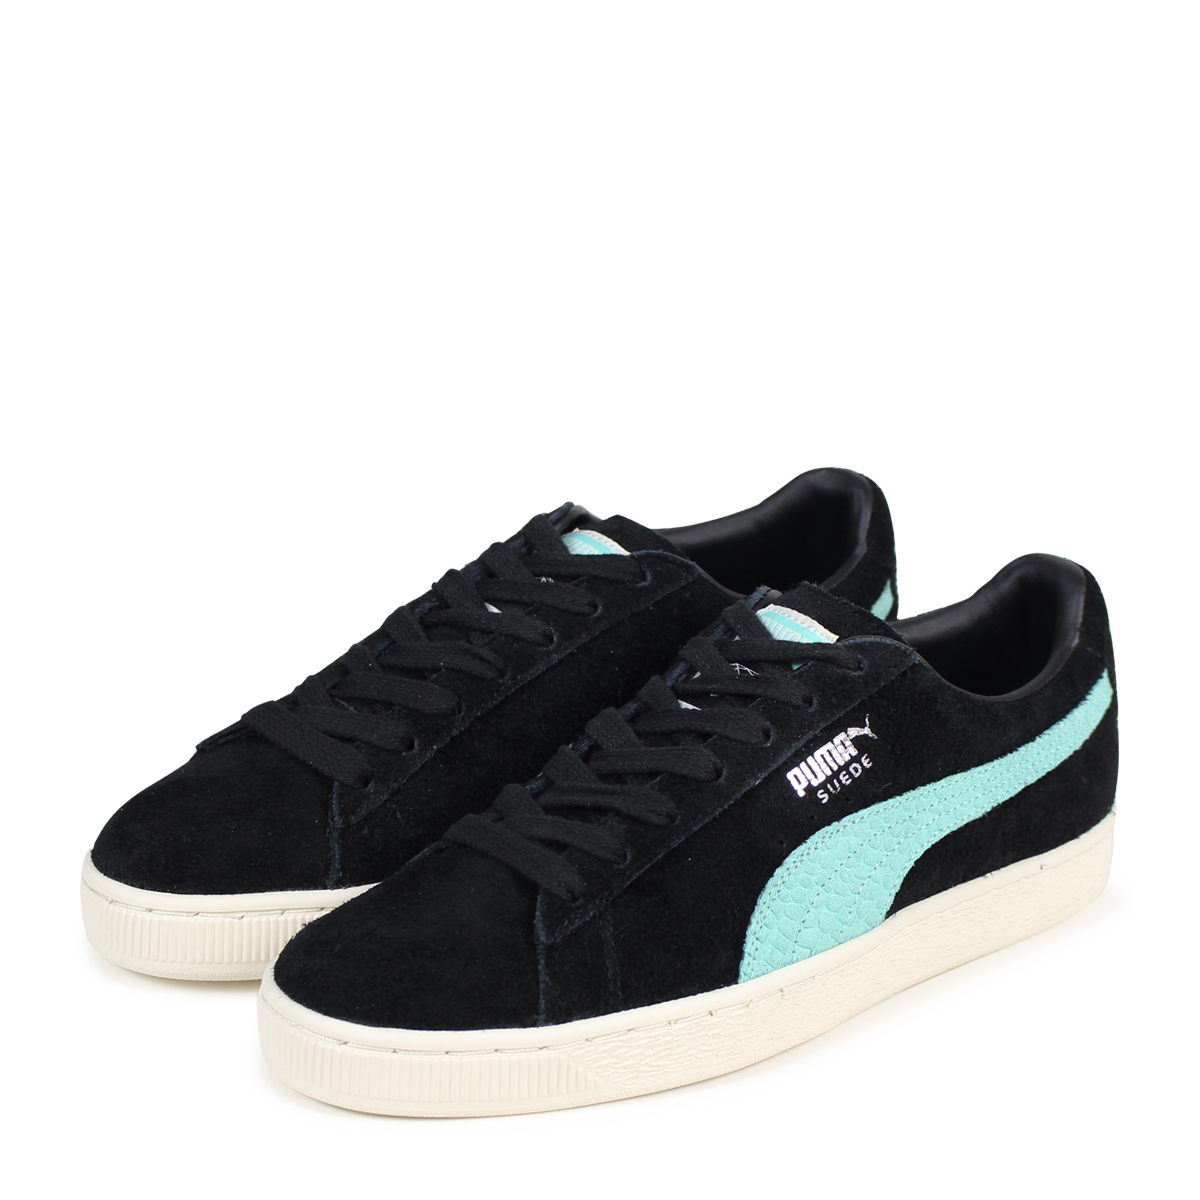 purchase cheap 3d24d 41438 PUMA SUEDE DIAMOND Puma suede sneakers men diamond supply collaboration  365,650-01 black [load planned Shinnyu load in reservation product 3/15 ...